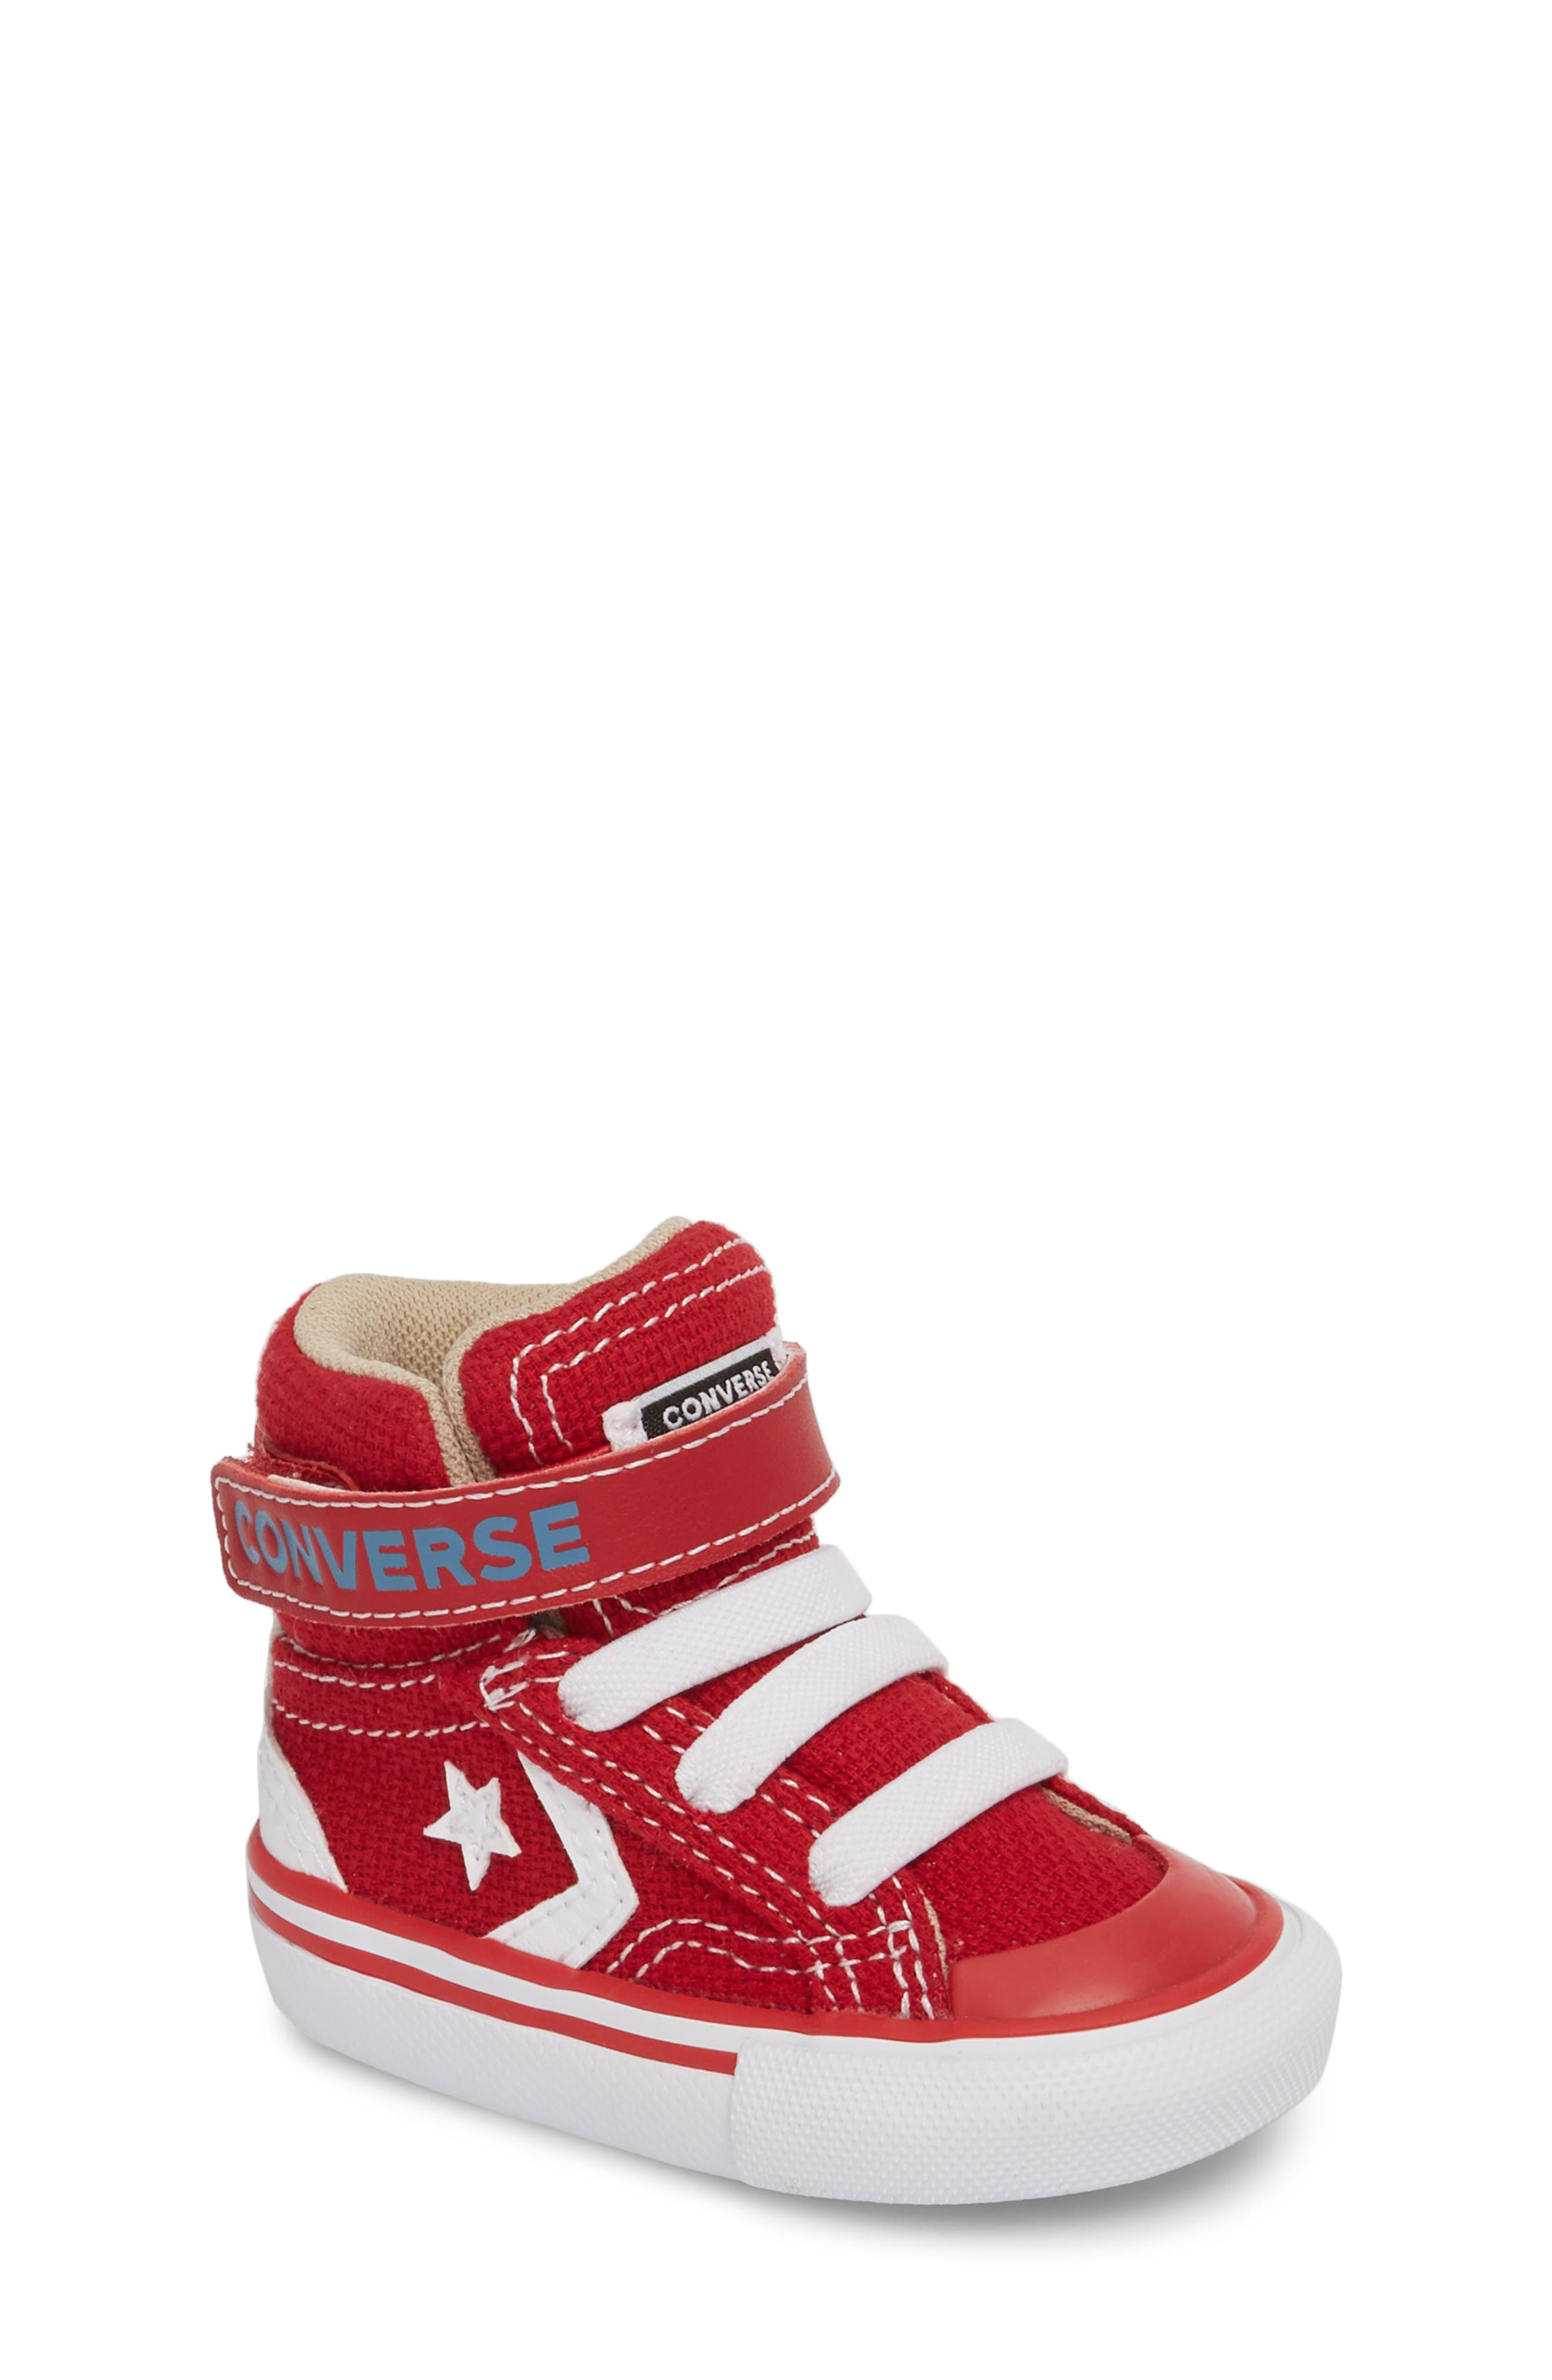 Pro Blaze High Top Sneaker,                             Main thumbnail 1, color,                             Gym Red